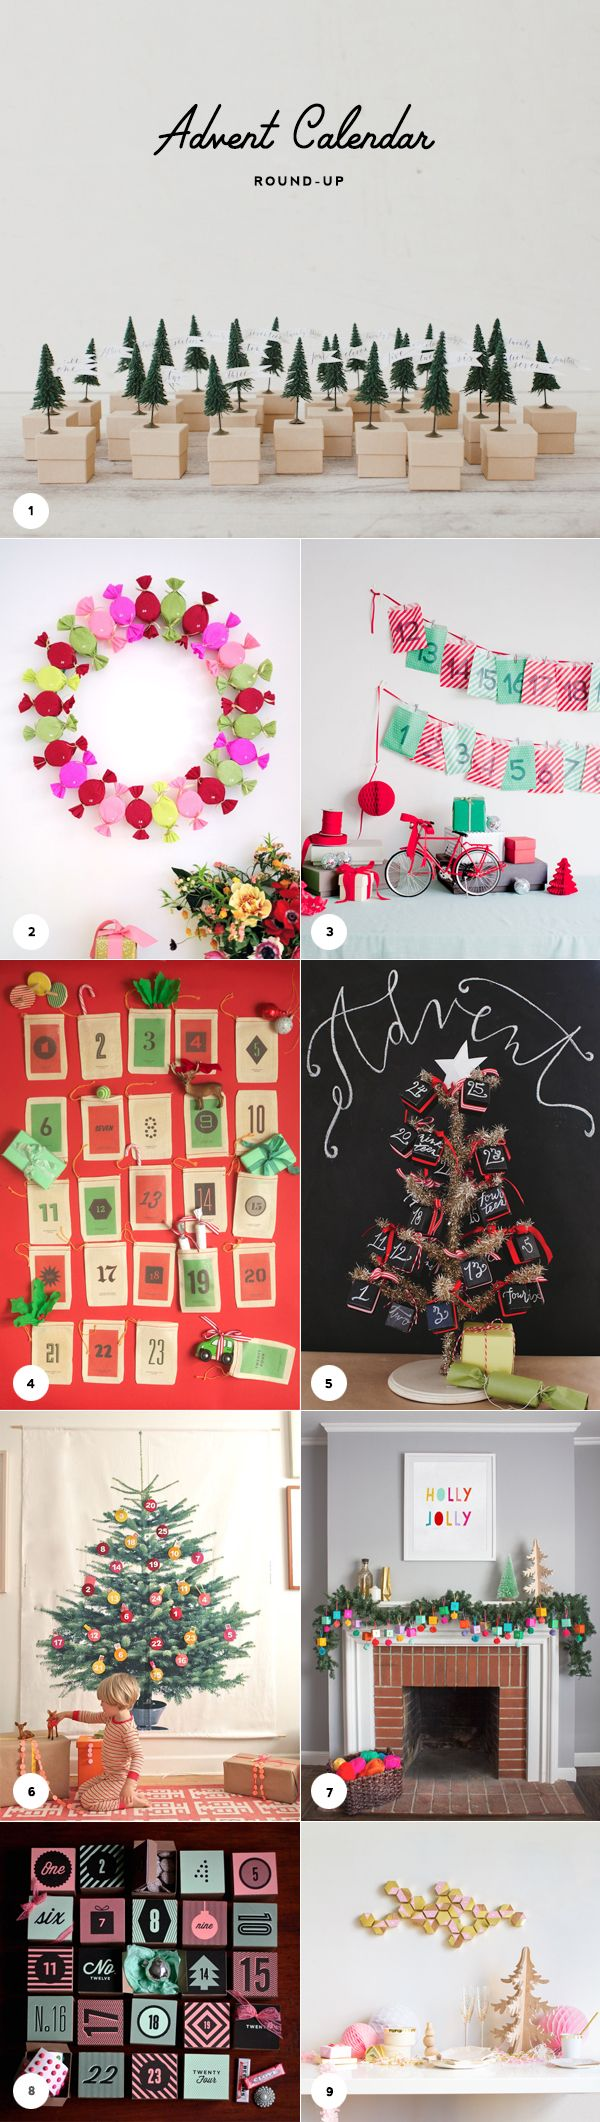 Diy Advent Calendar Wreath : Best diy advent wreath ideas on pinterest